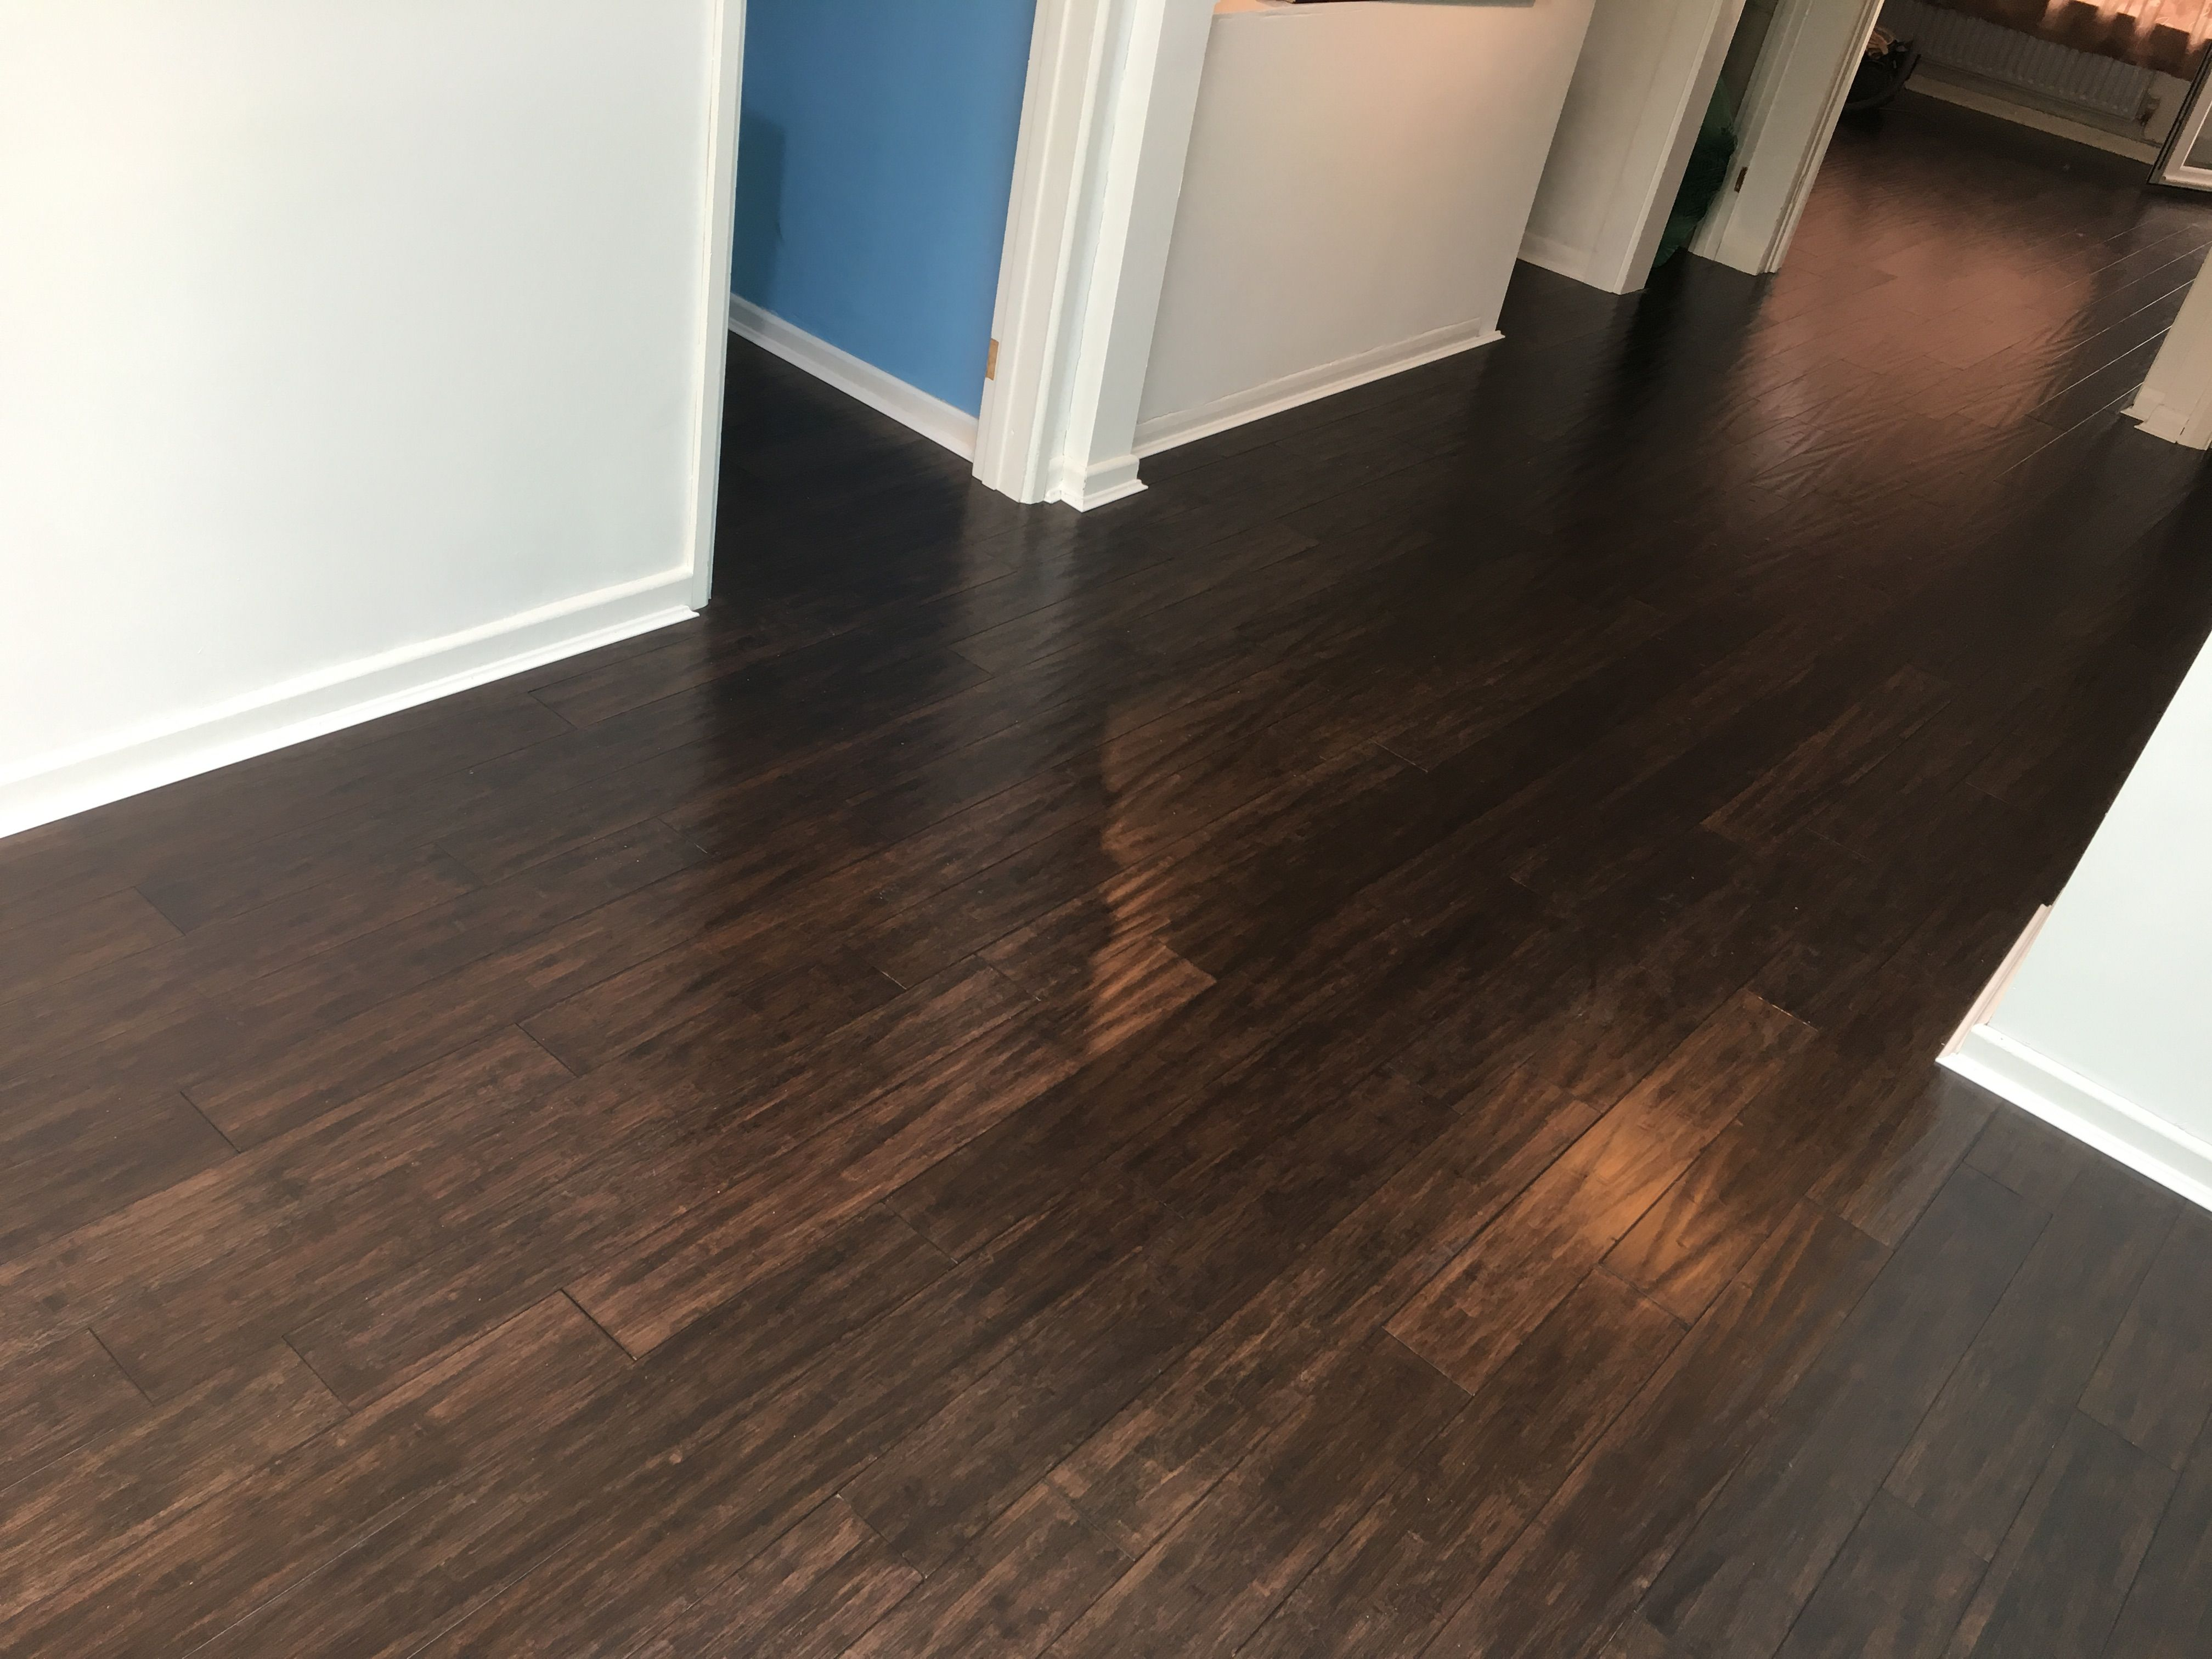 Pin by Floor fitter wales on Bamboo flooring Bamboo